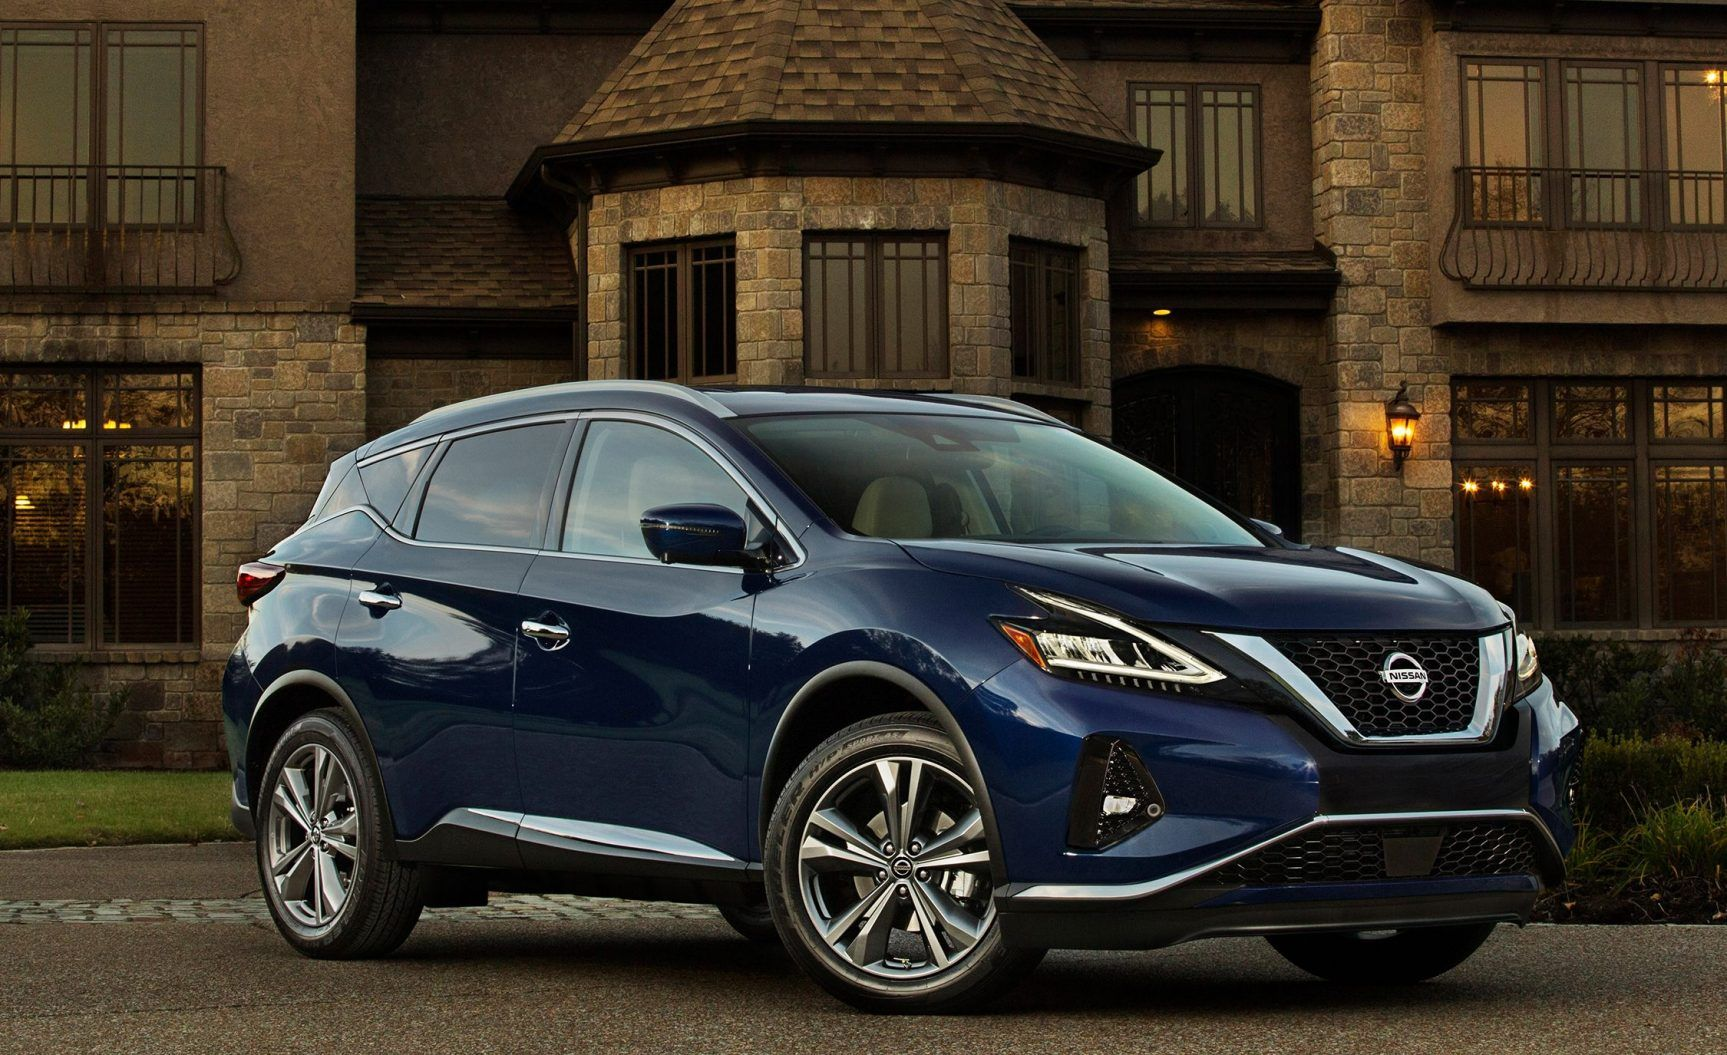 2020 Nissan Murano Review Release Date Interior Engine Price